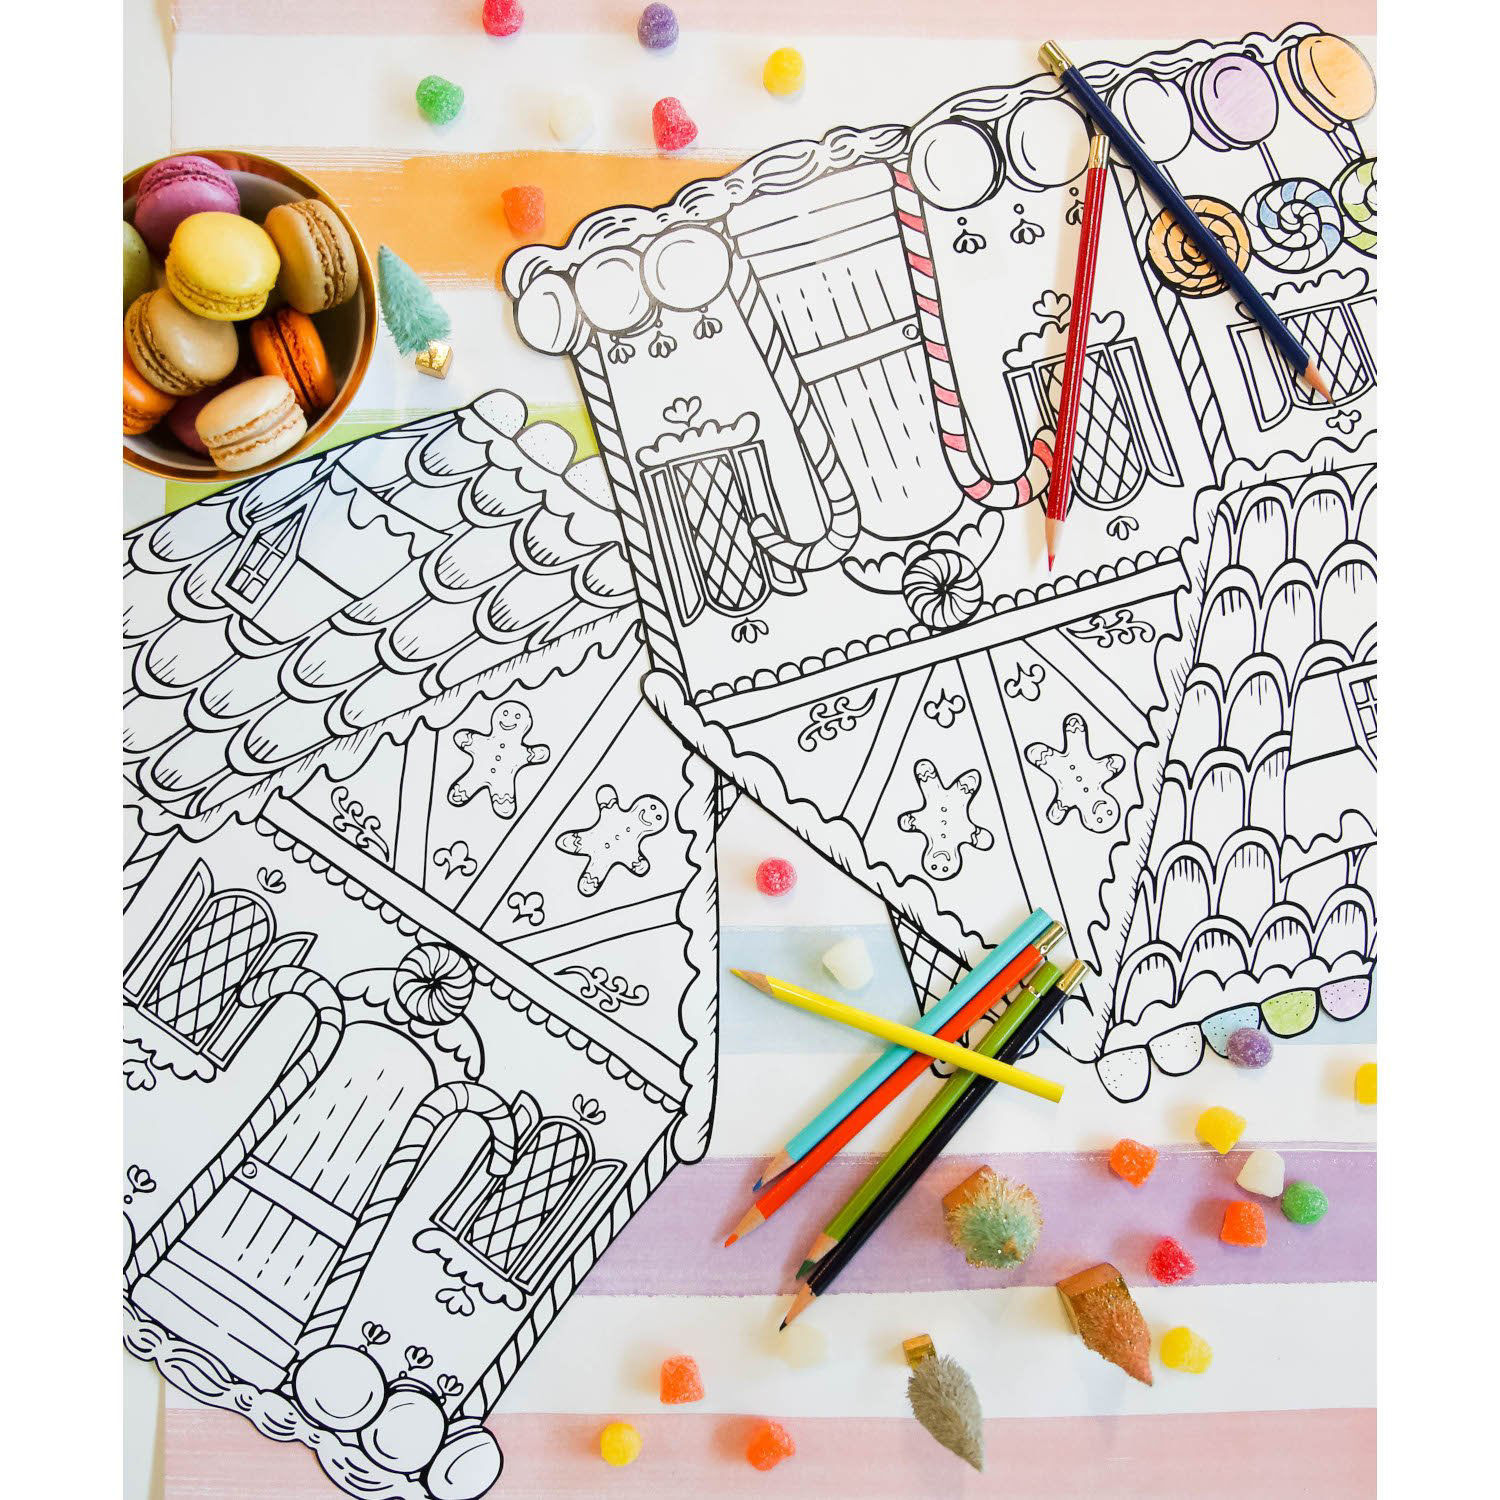 Die-Cut Gingerbread House Coloring Placemat by Hester & Cook